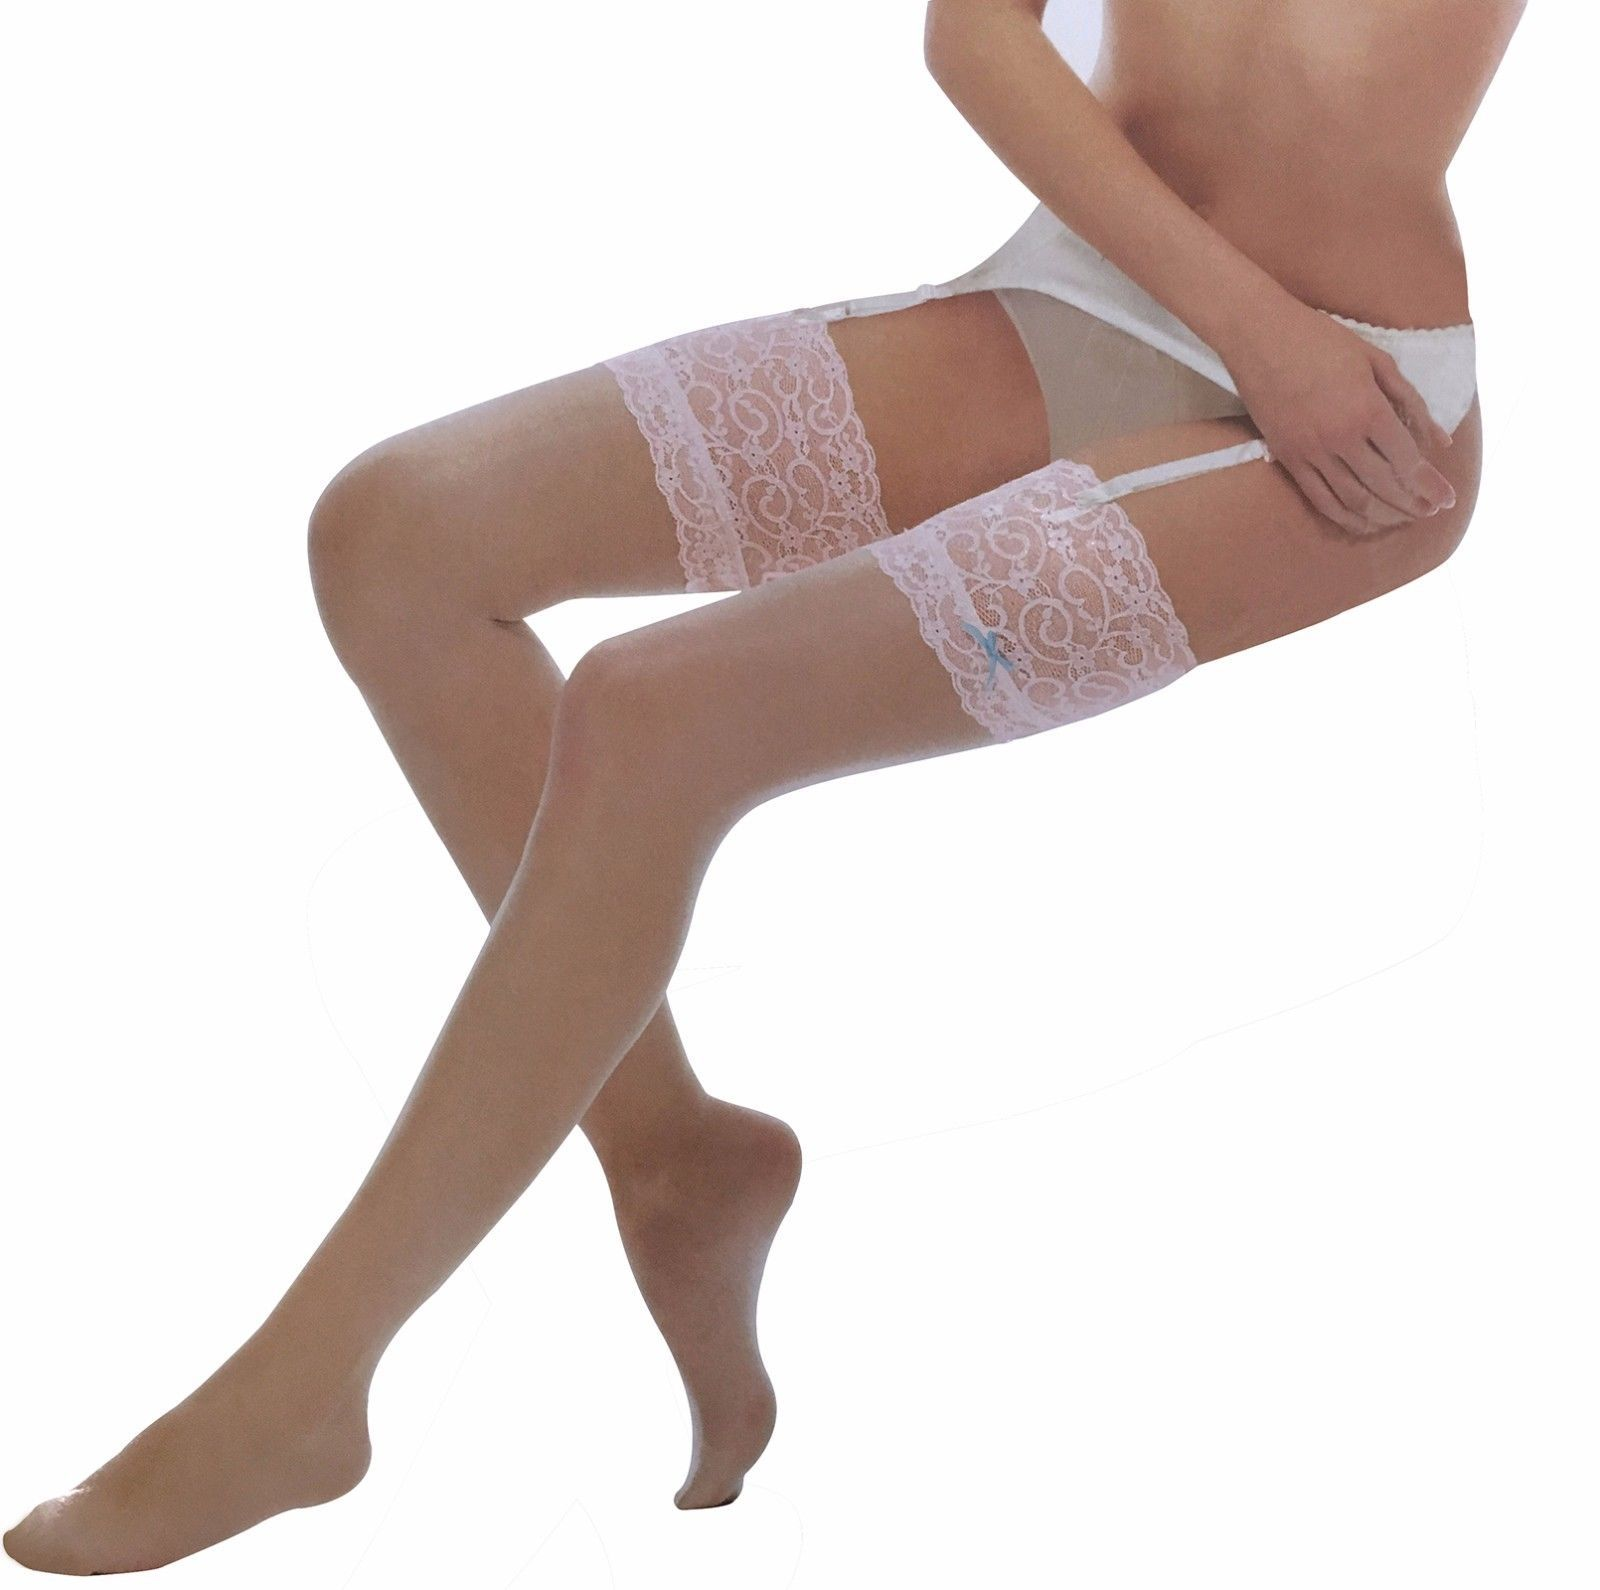 Ladies Sexy 10 Denier Thigh High Over the Knee Deep Lace Top Stockings with Bow